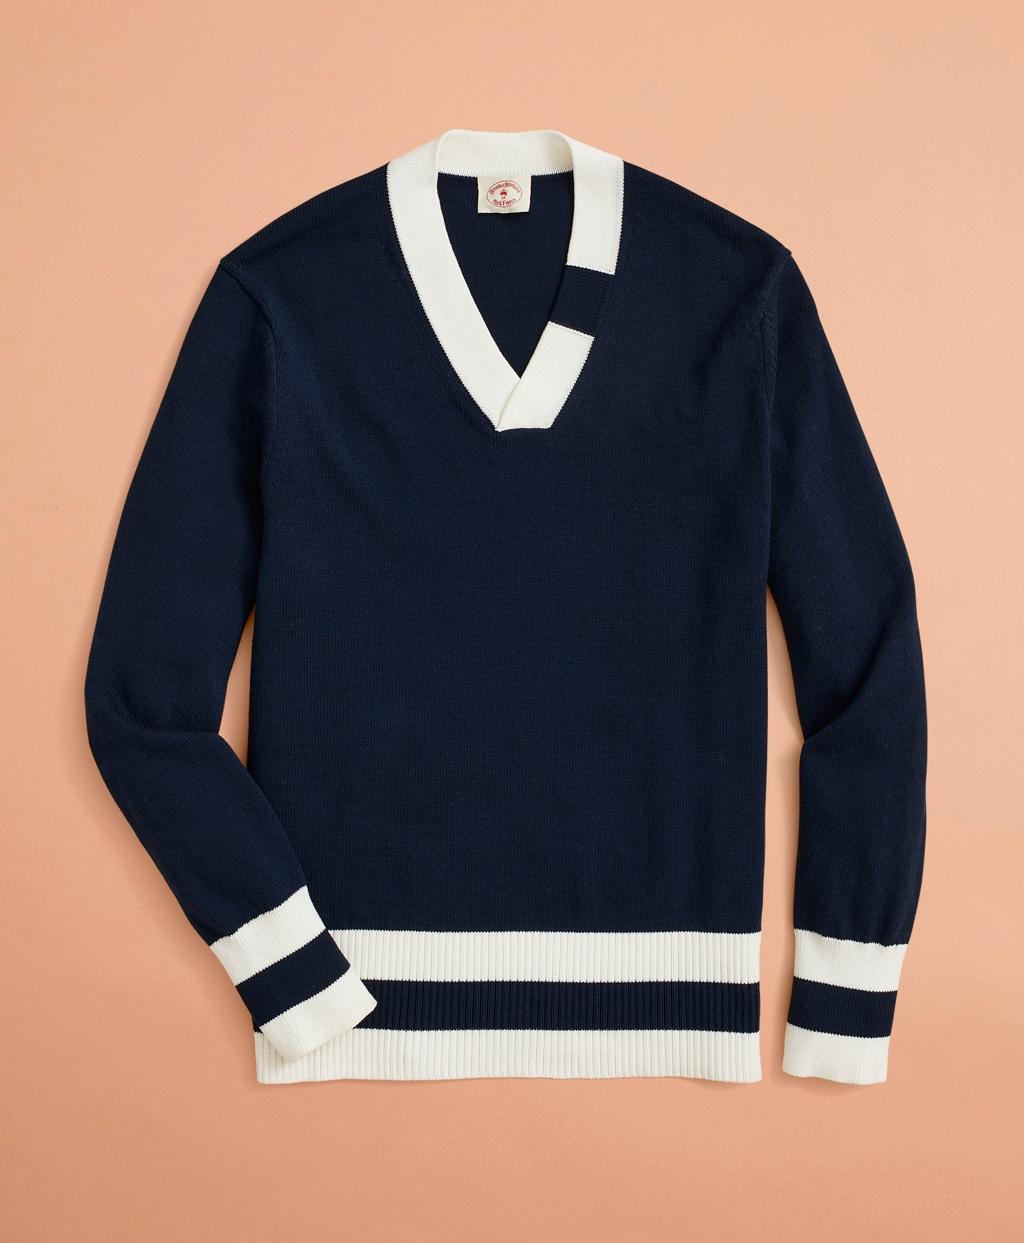 Men's Vintage Sweaters History Brooks Brothers Mens V-Neck Tennis Sweater $73.88 AT vintagedancer.com